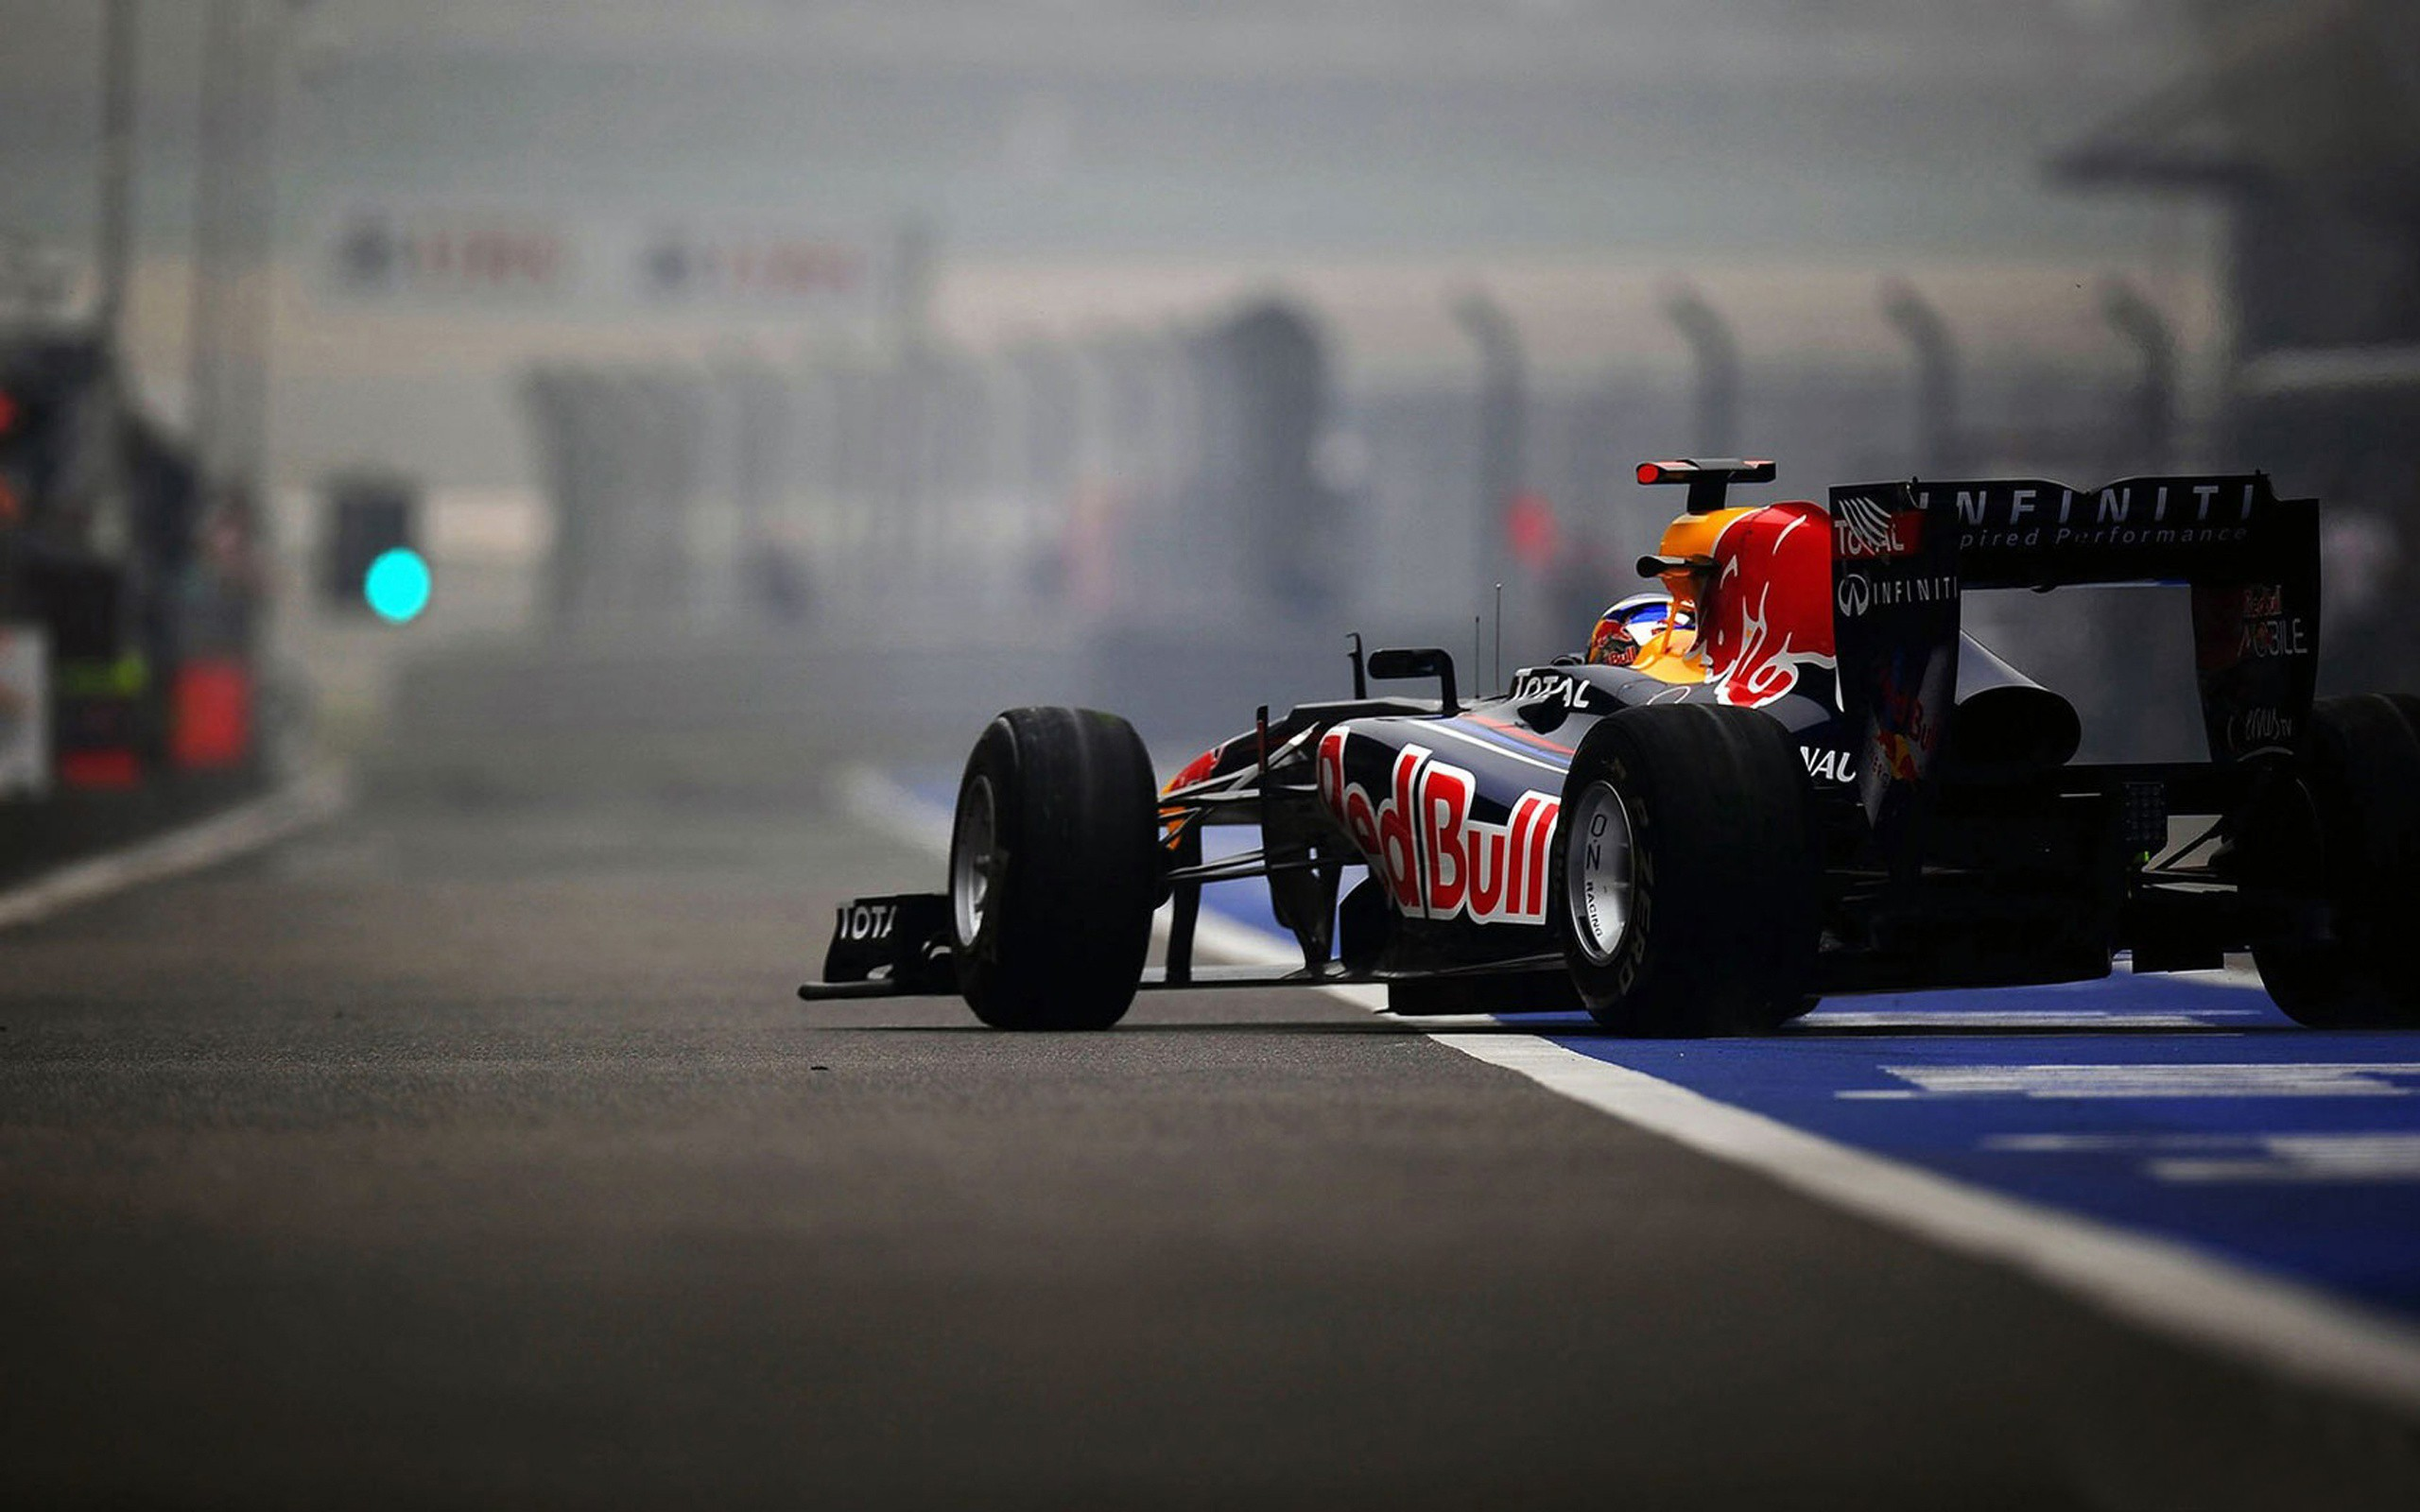 Infinity Red Bull Formula 1 Car wallpapers | Infinity Red ...